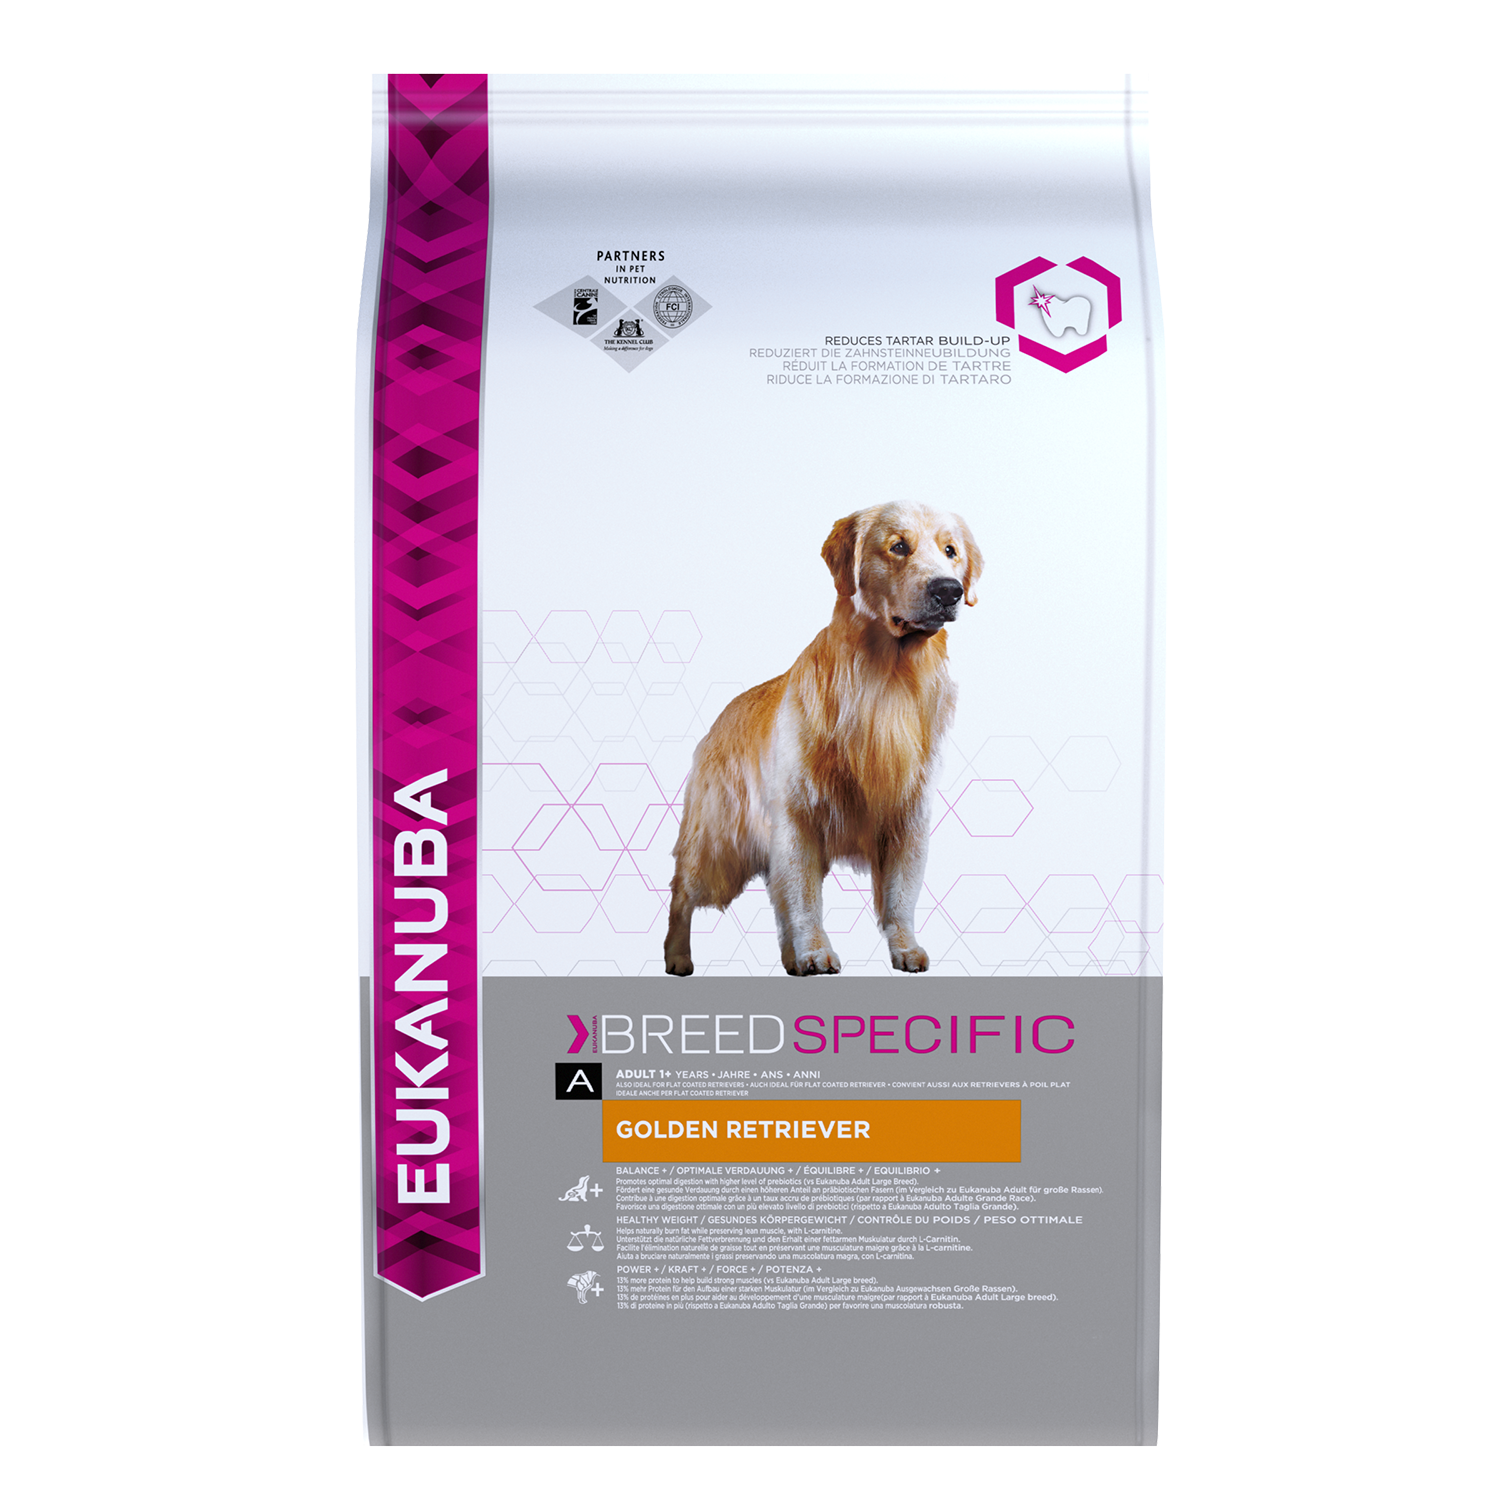 Eukanuba Puppy Food >> EUKANUBA ADULT DRY DOG FOOD FOR GOLDEN RETRIEVER, CHICKEN - Dog Food,Nutrition and Breed ...